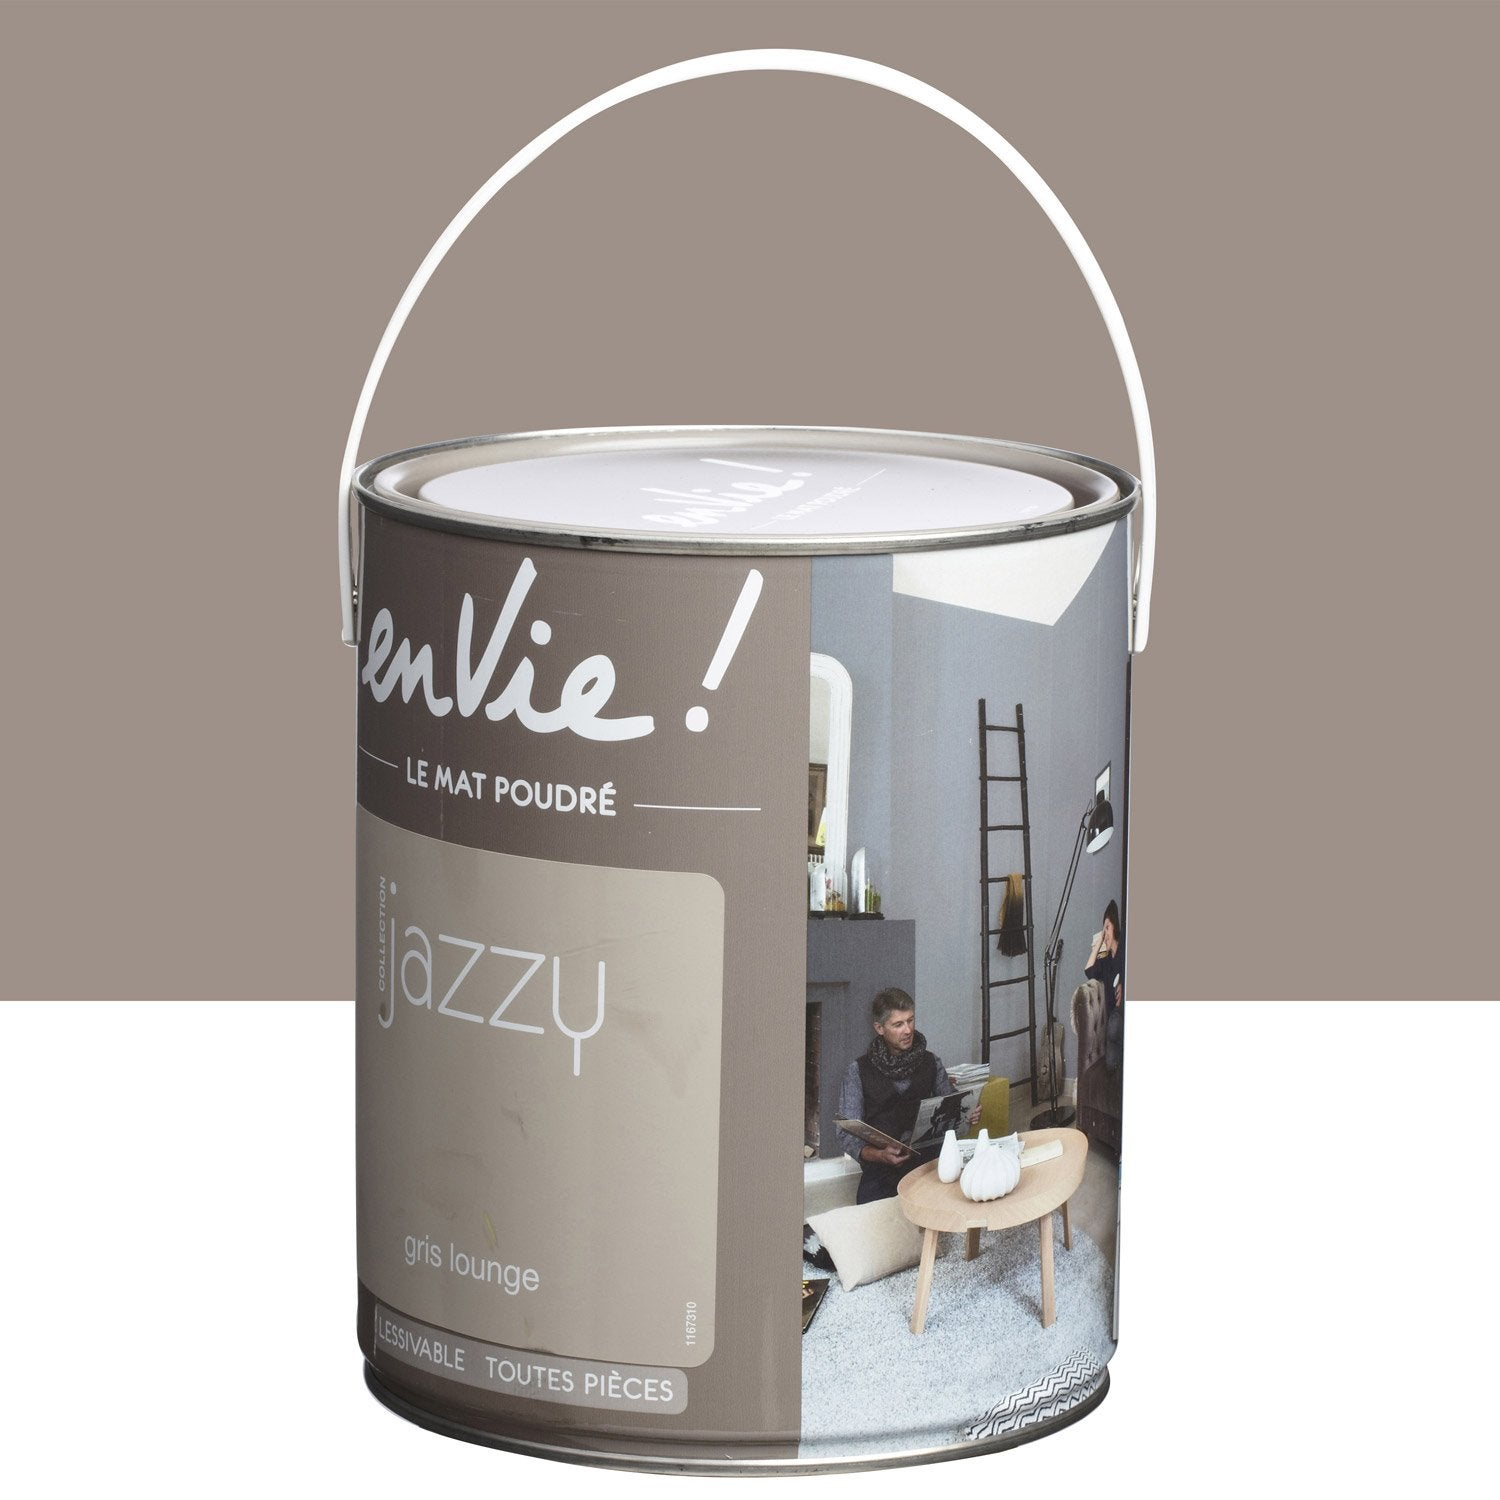 Peinture gris lounge luxens envie collection jazzy 2 5 l leroy merlin - Peinture envie leroy merlin ...